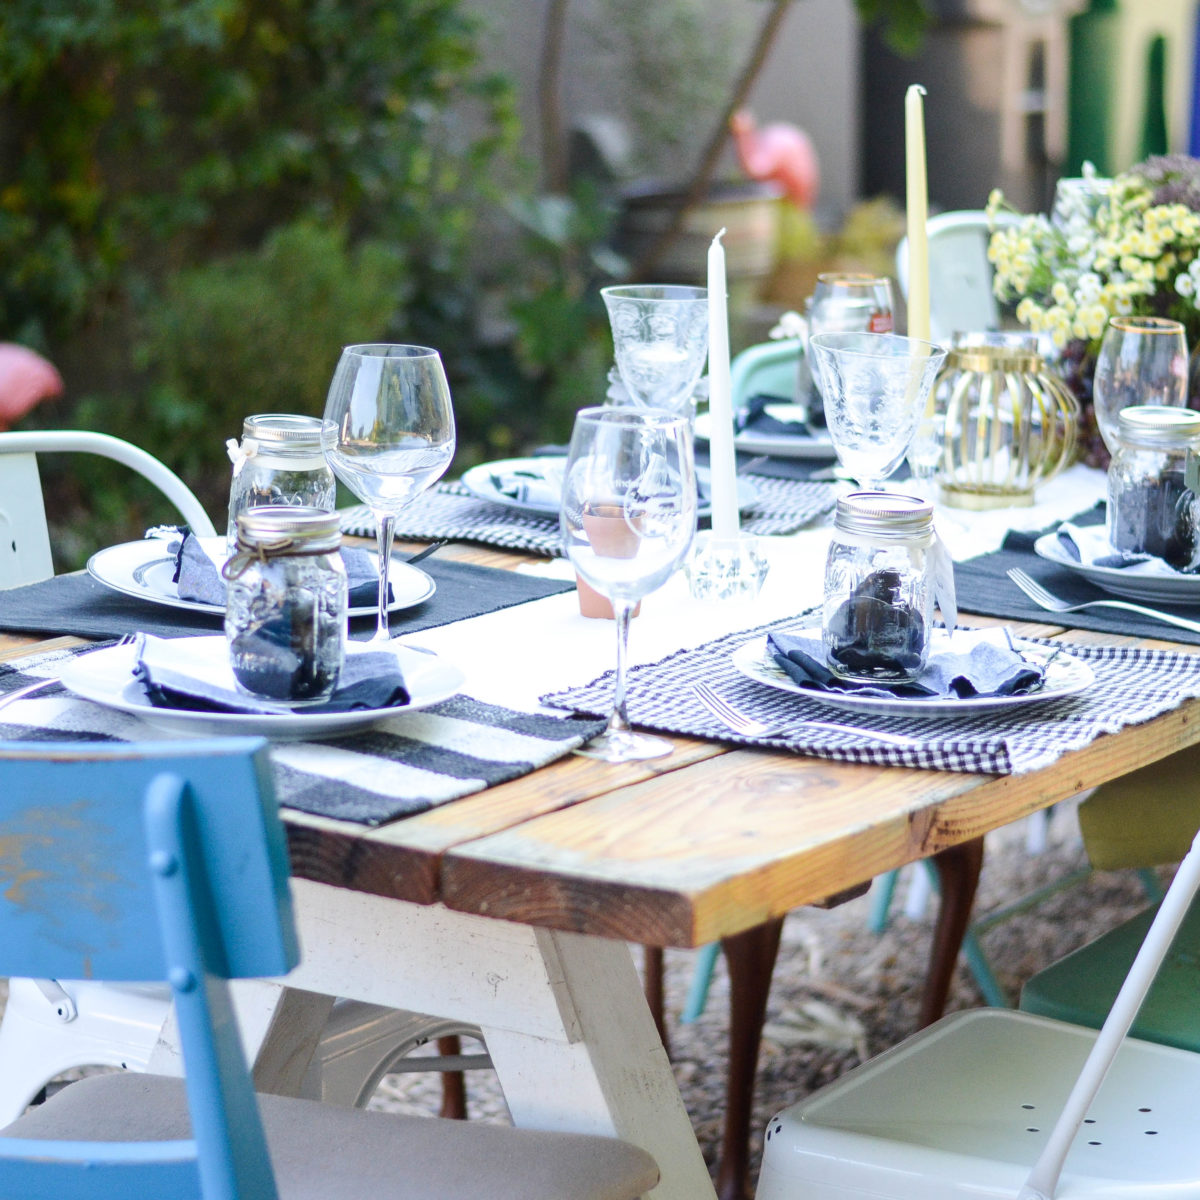 How to host an inexpensive Farm to table dinner